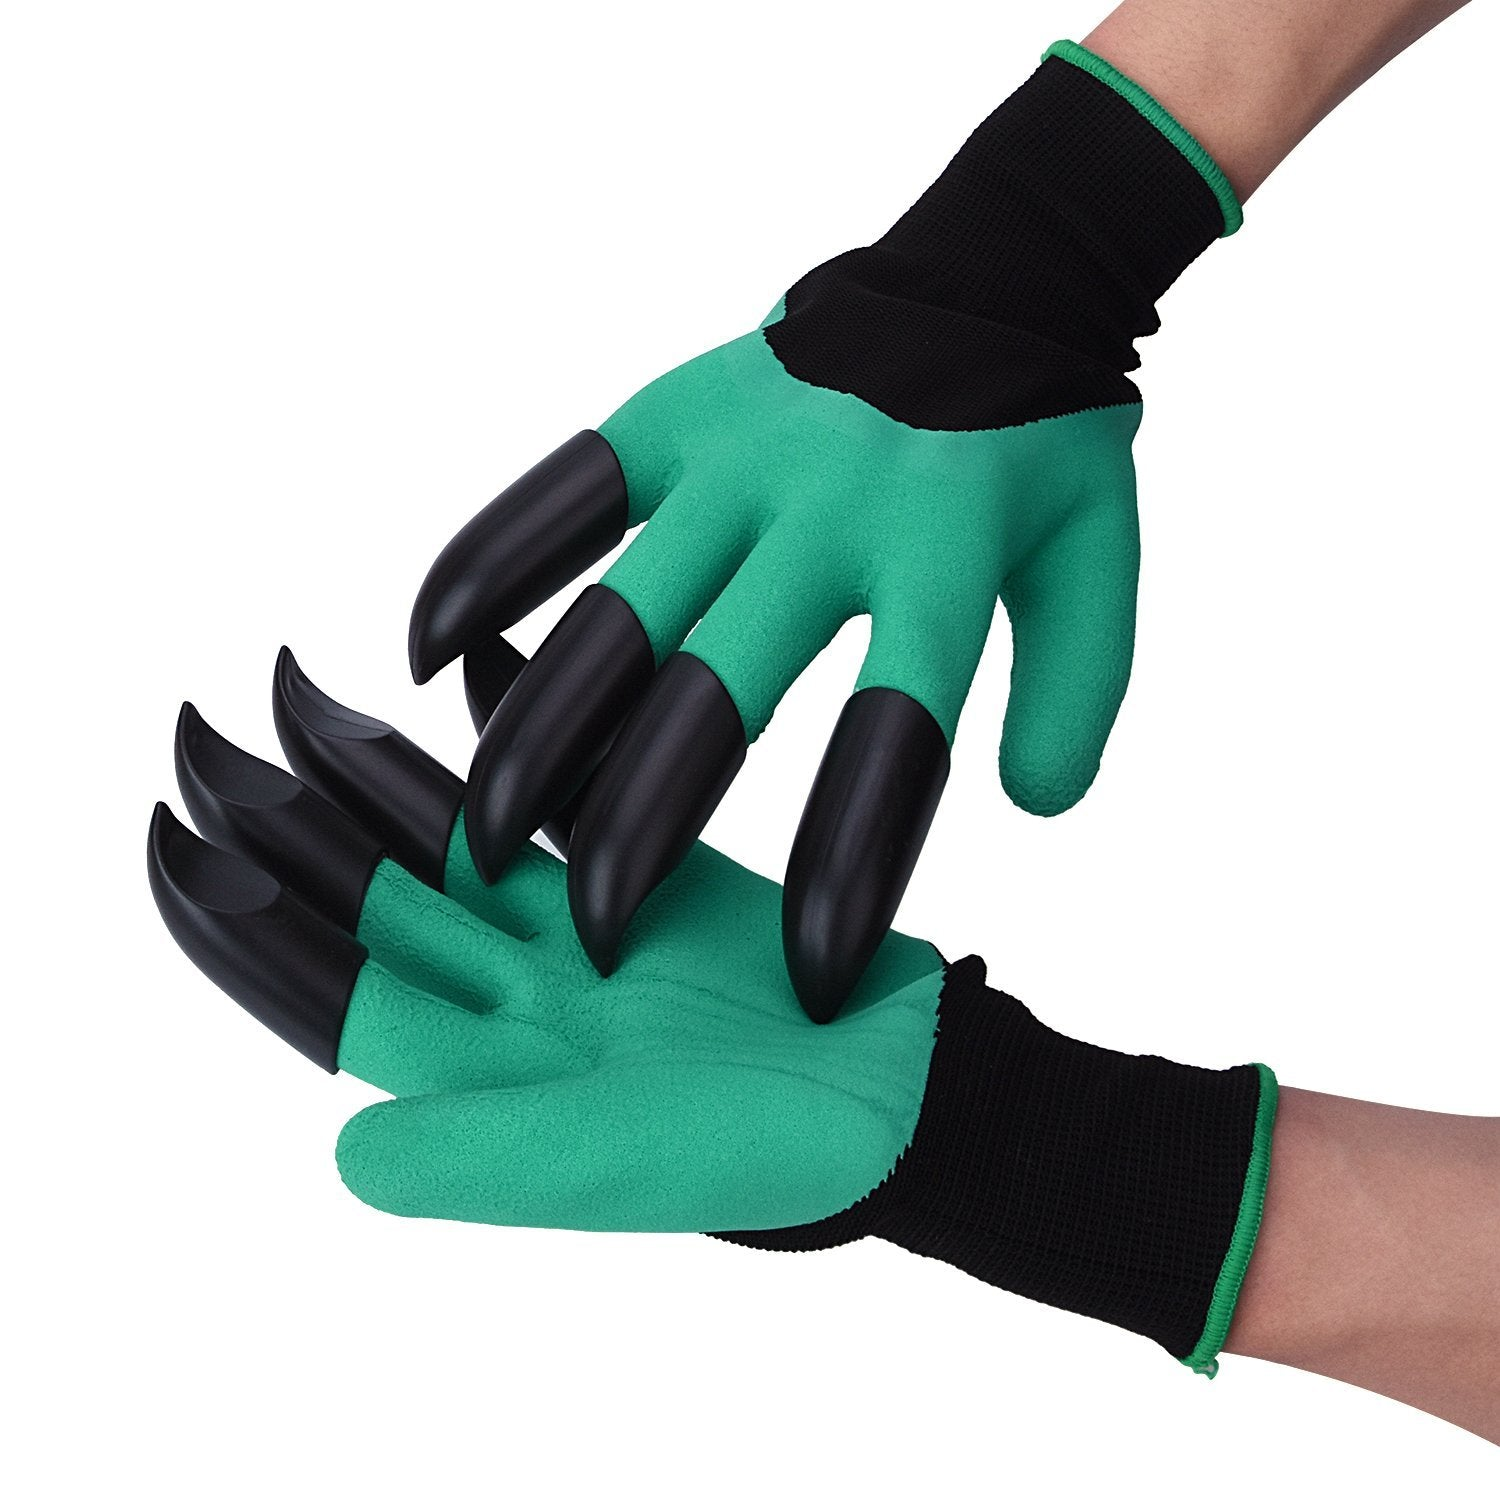 Garden Glove Claws (50% Off Today Only!)